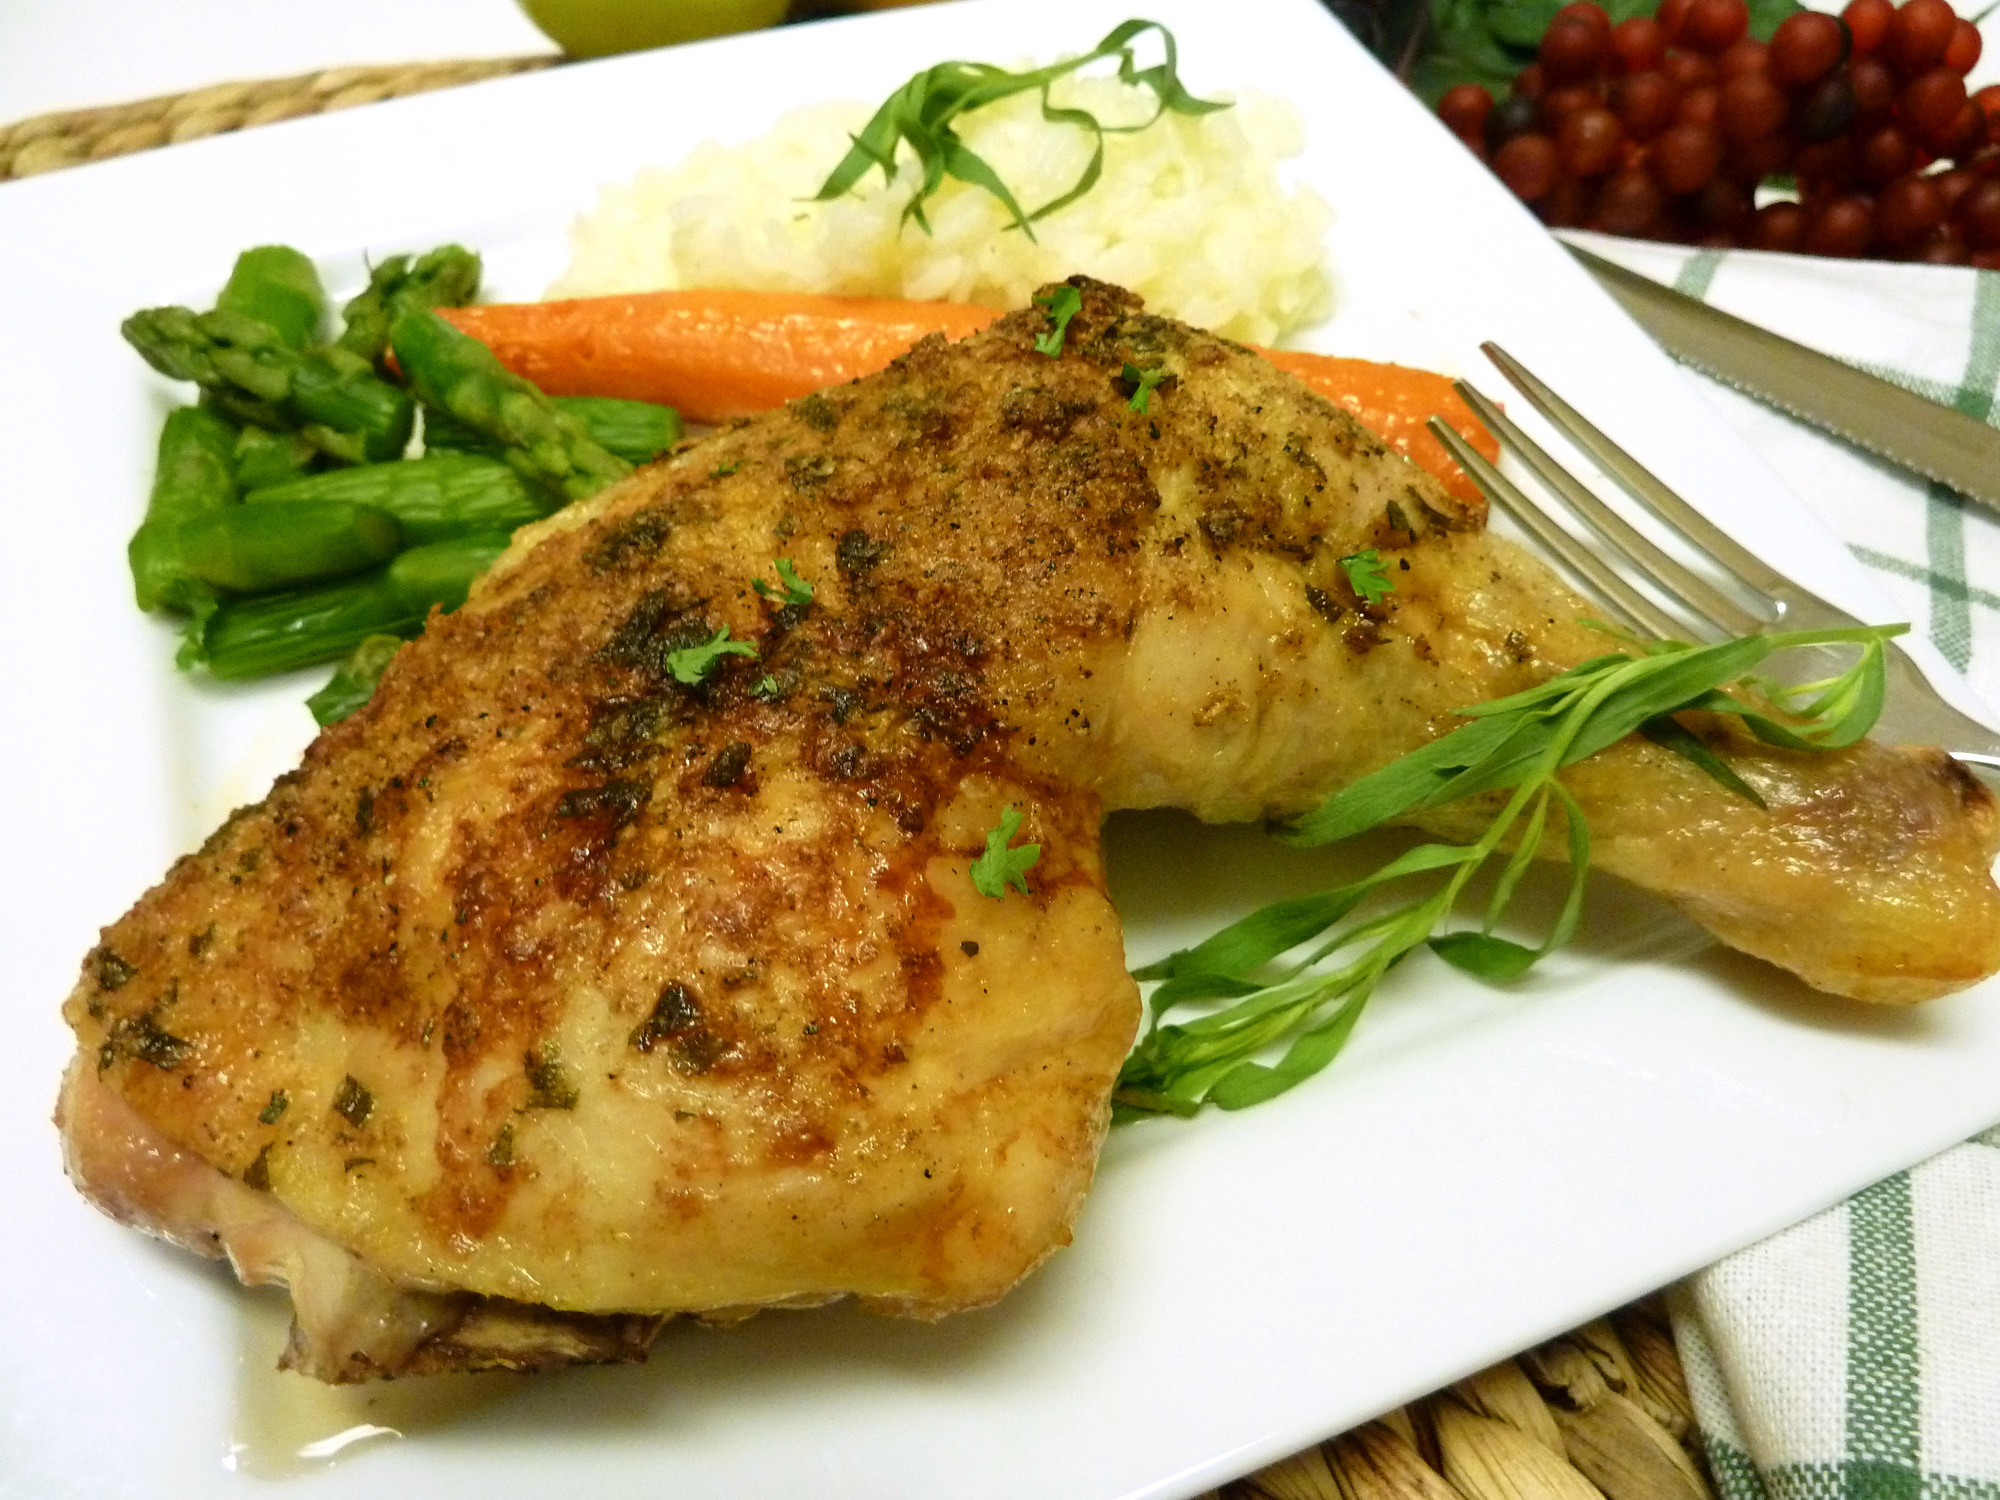 Leg portion from whole baked spatchcocked chicken tarragon.